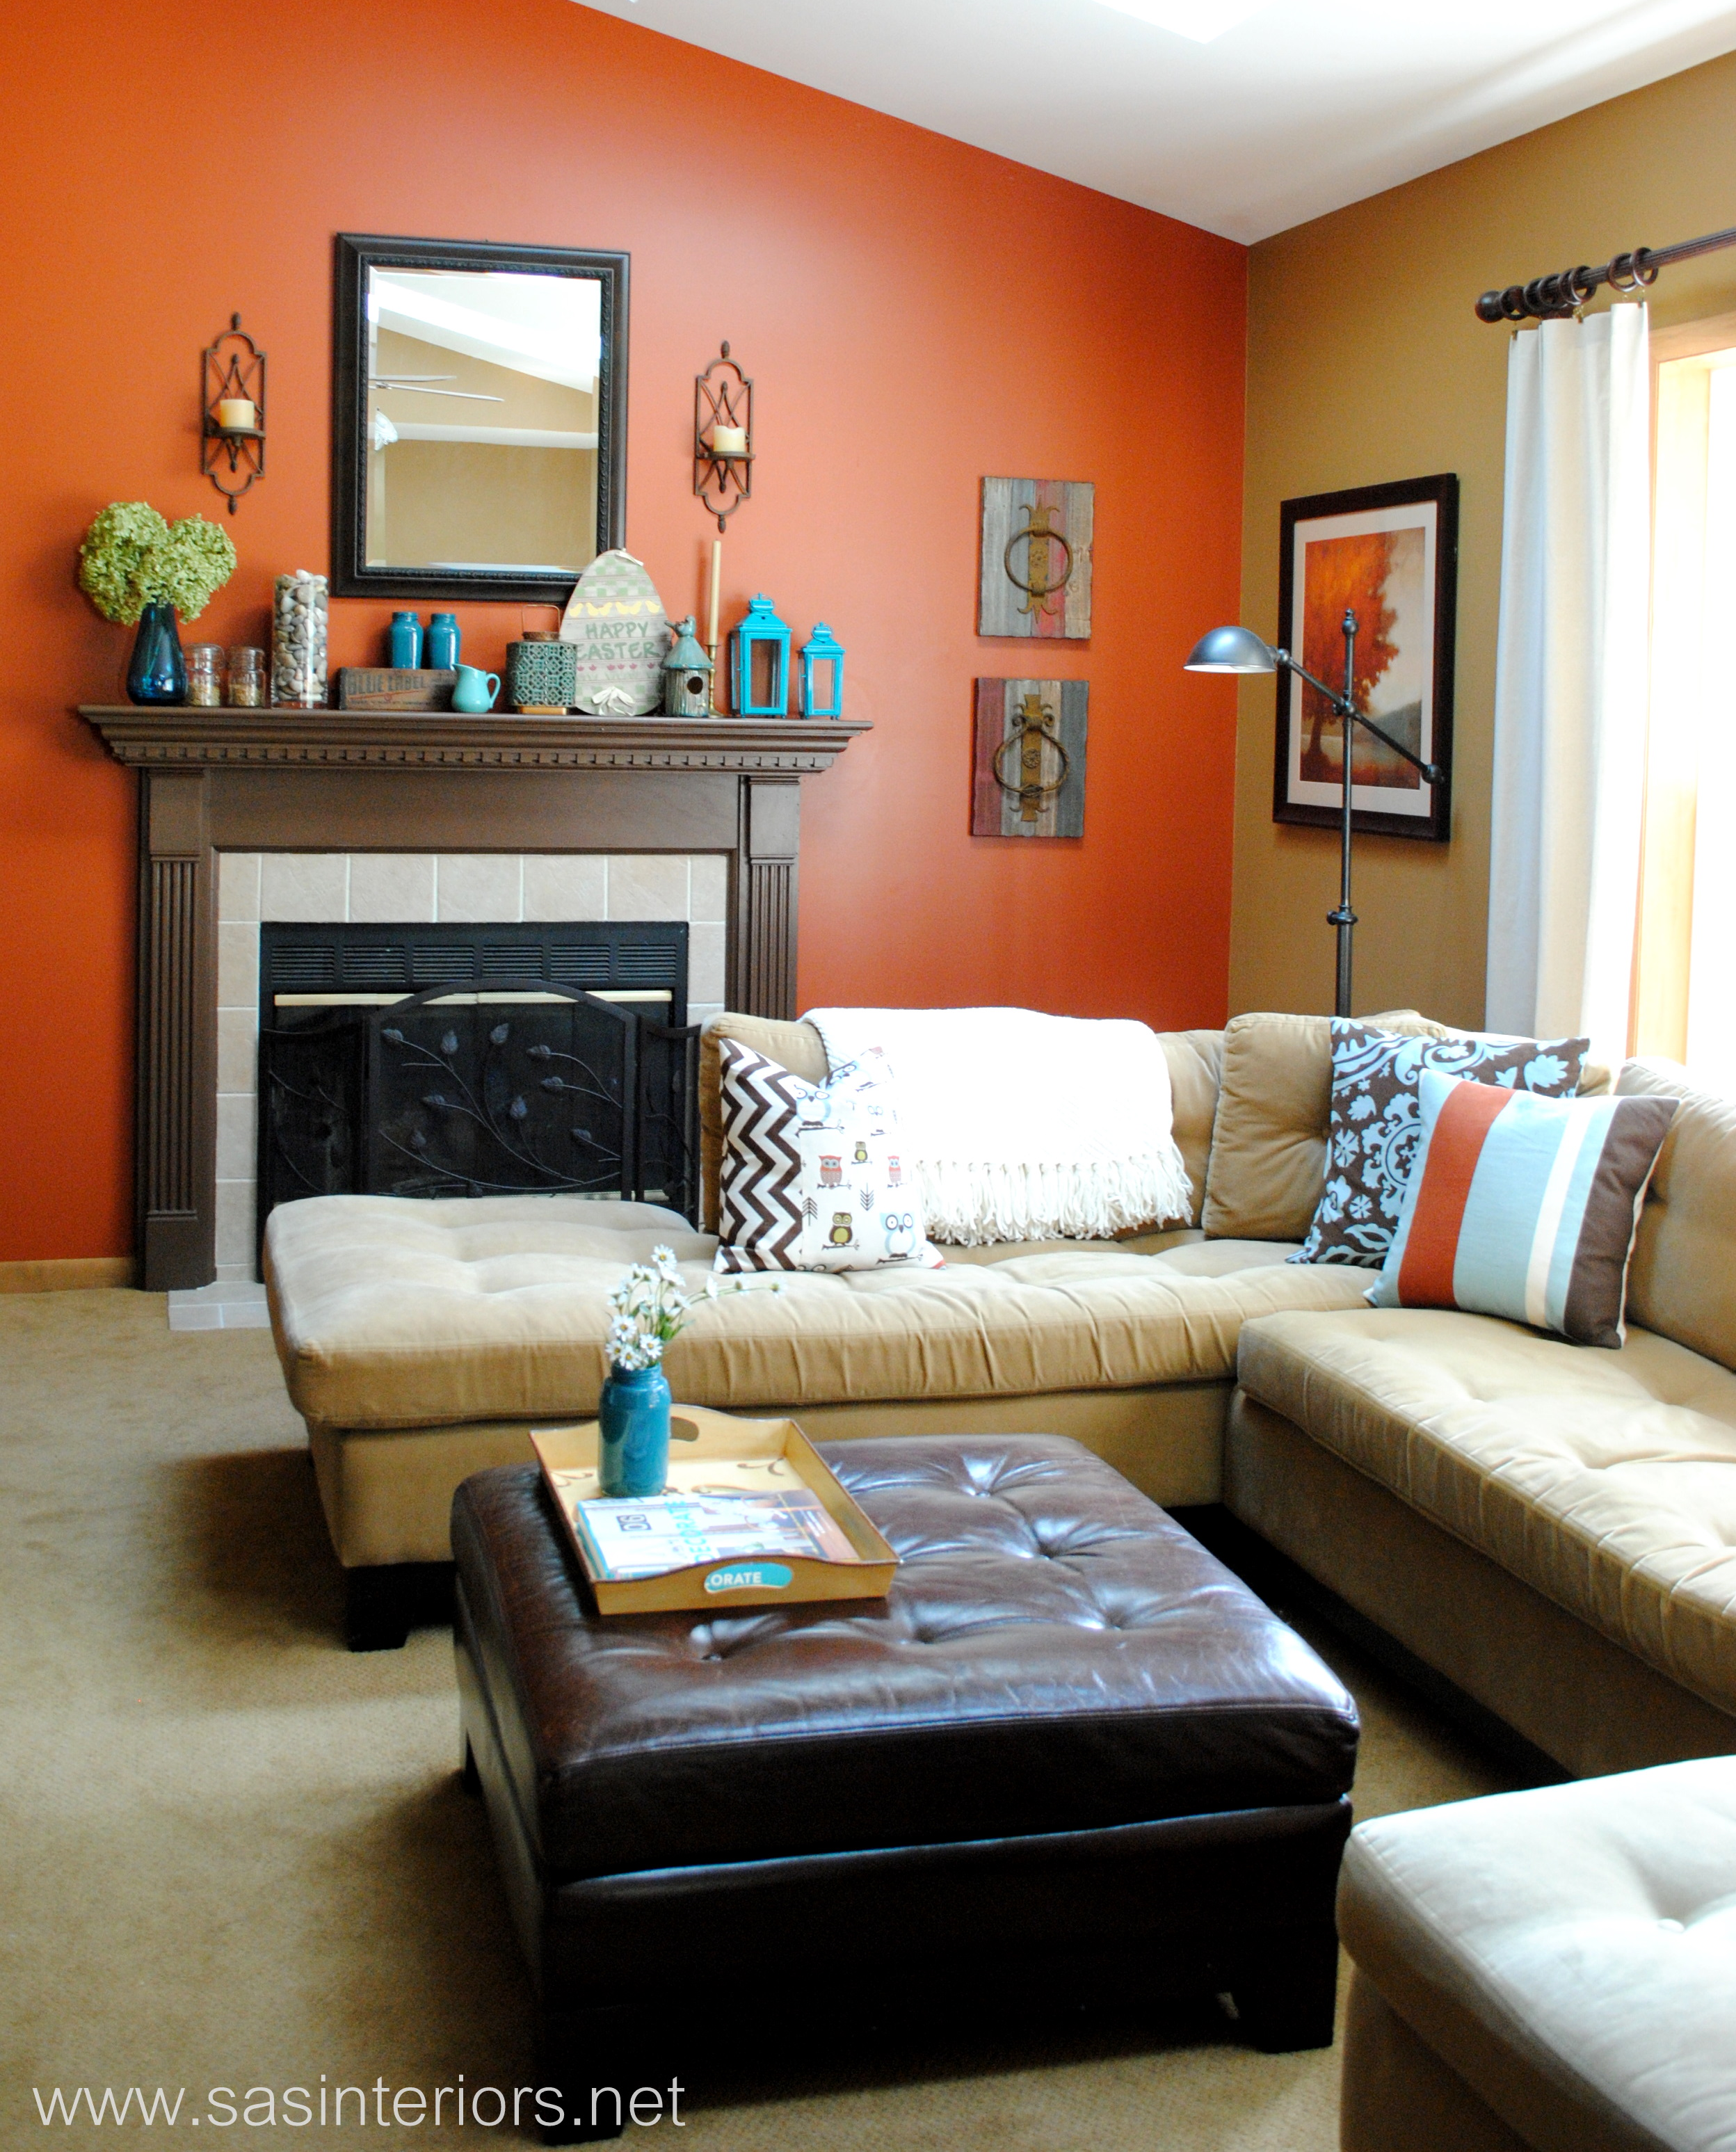 1000+ images about Living room on Pinterest.